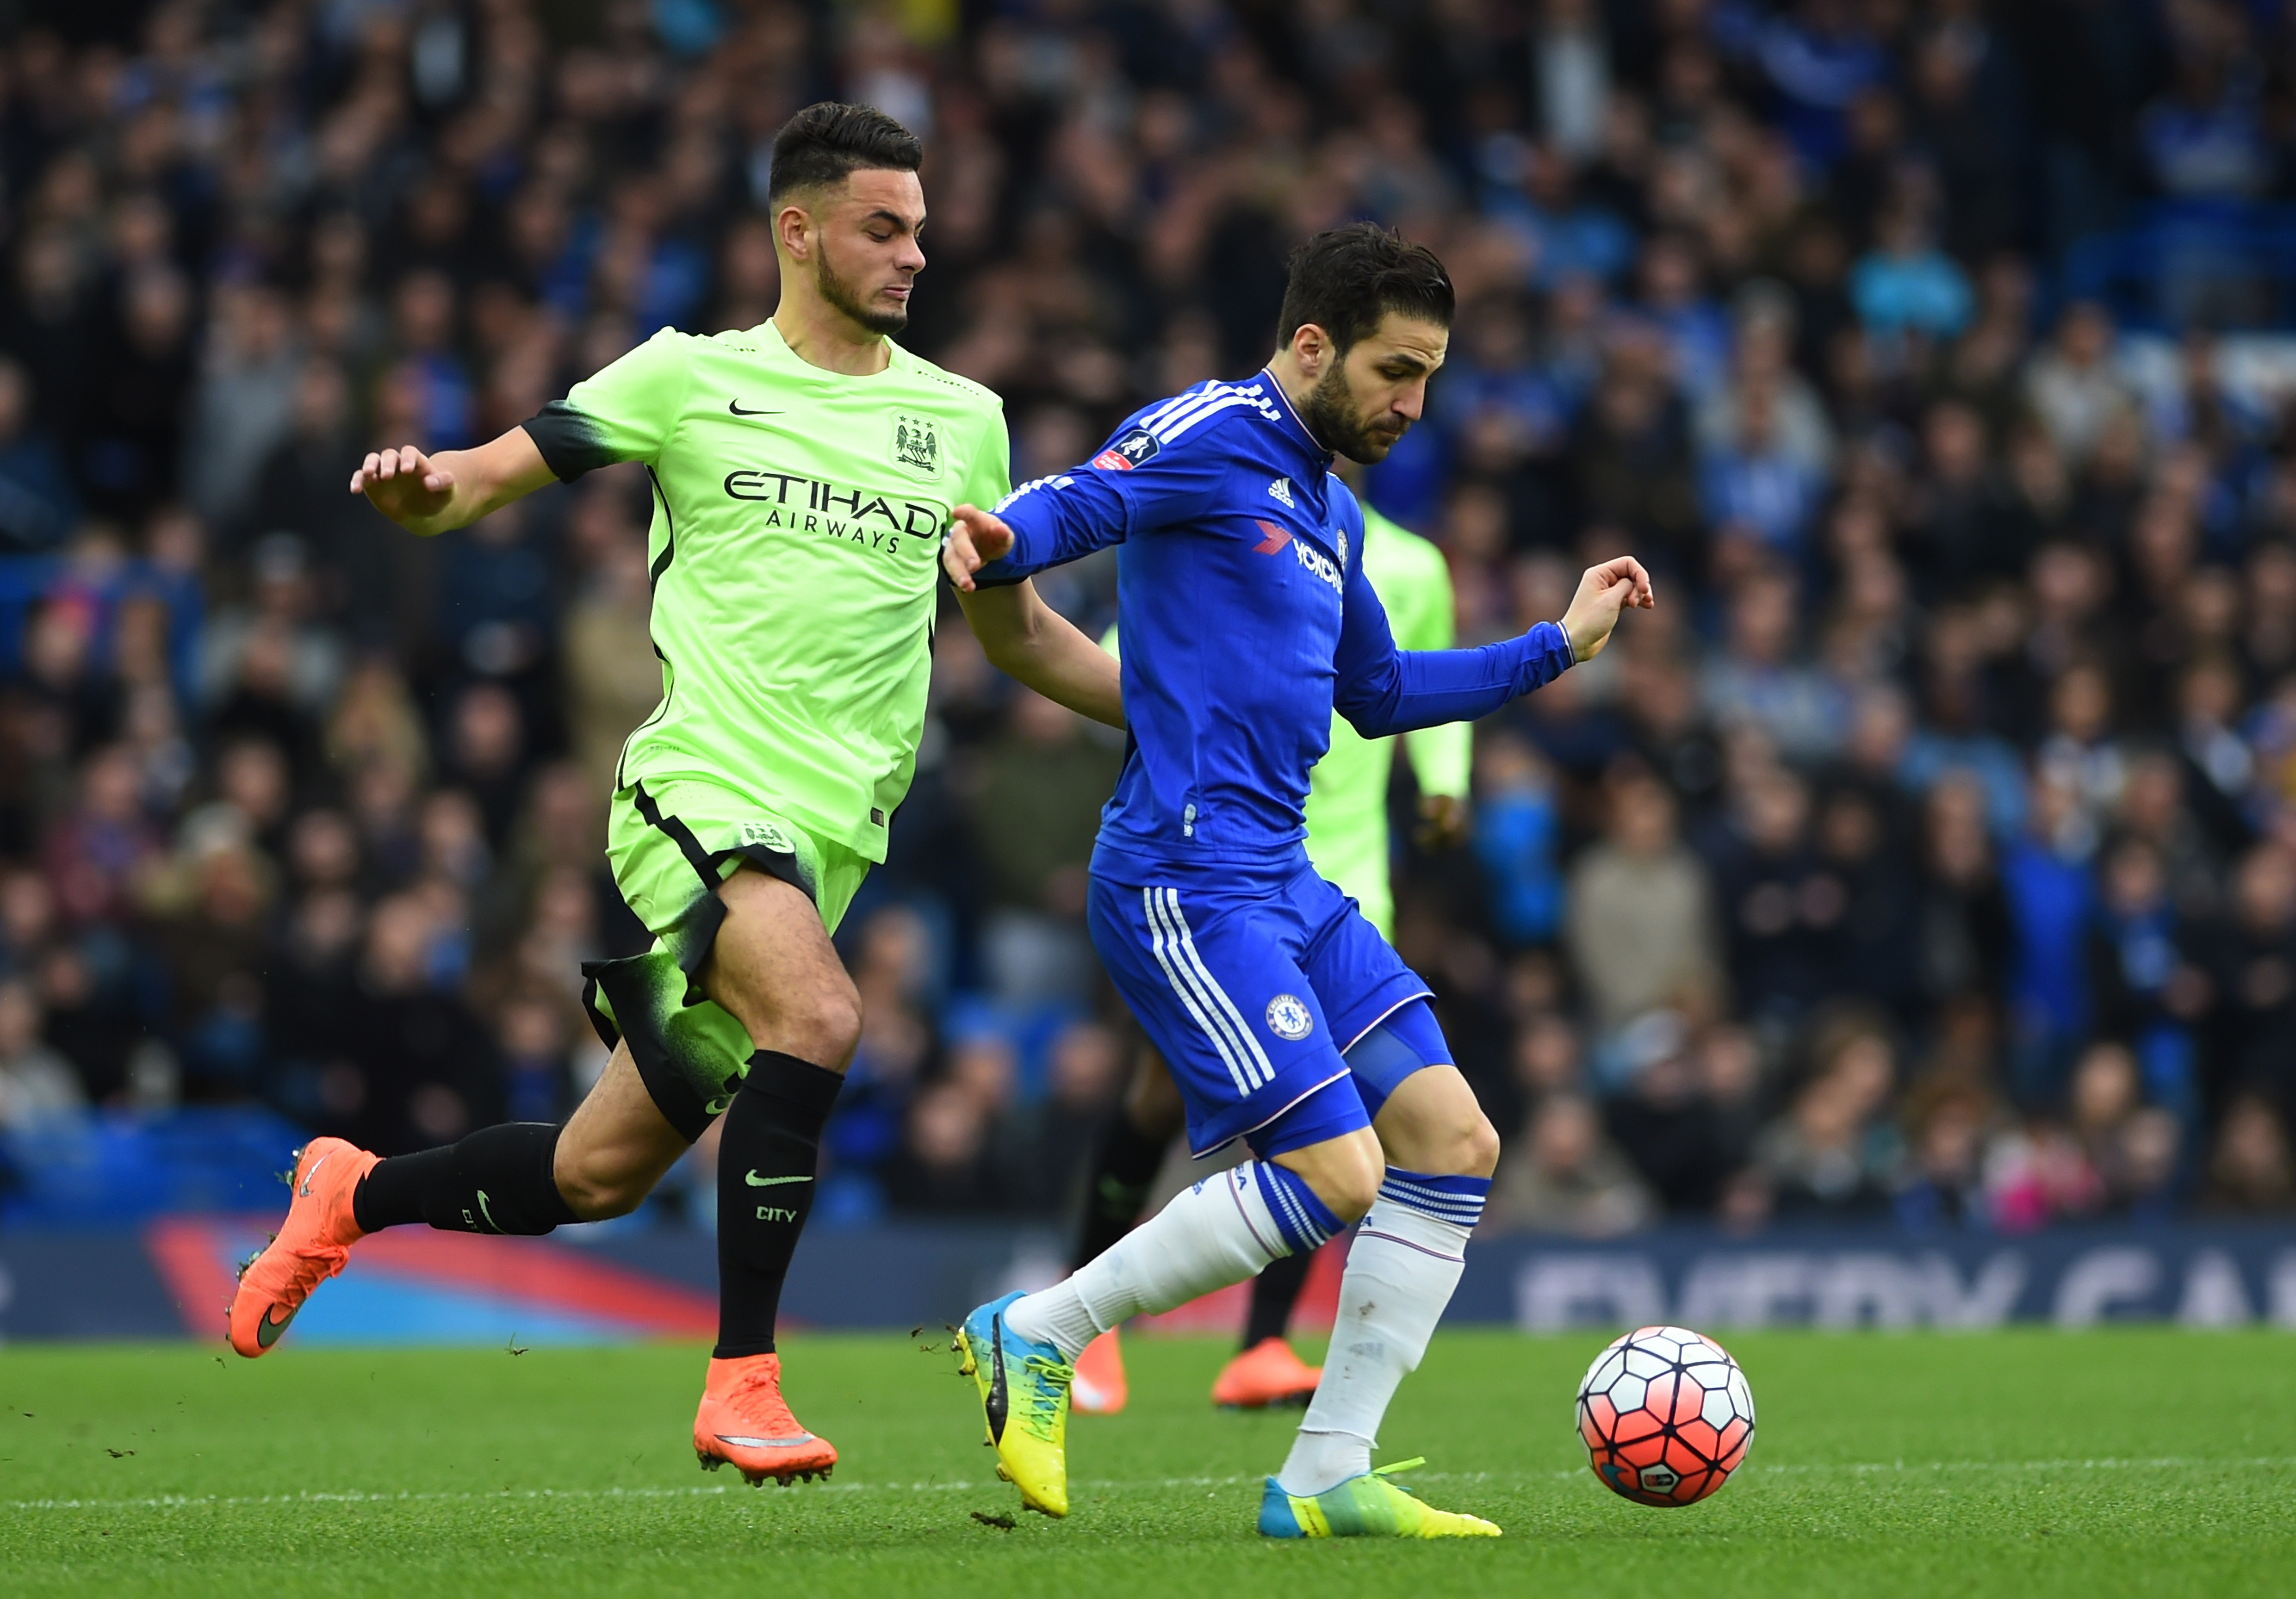 Chelsea v Manchester City - The Emirates FA Cup Fifth Round